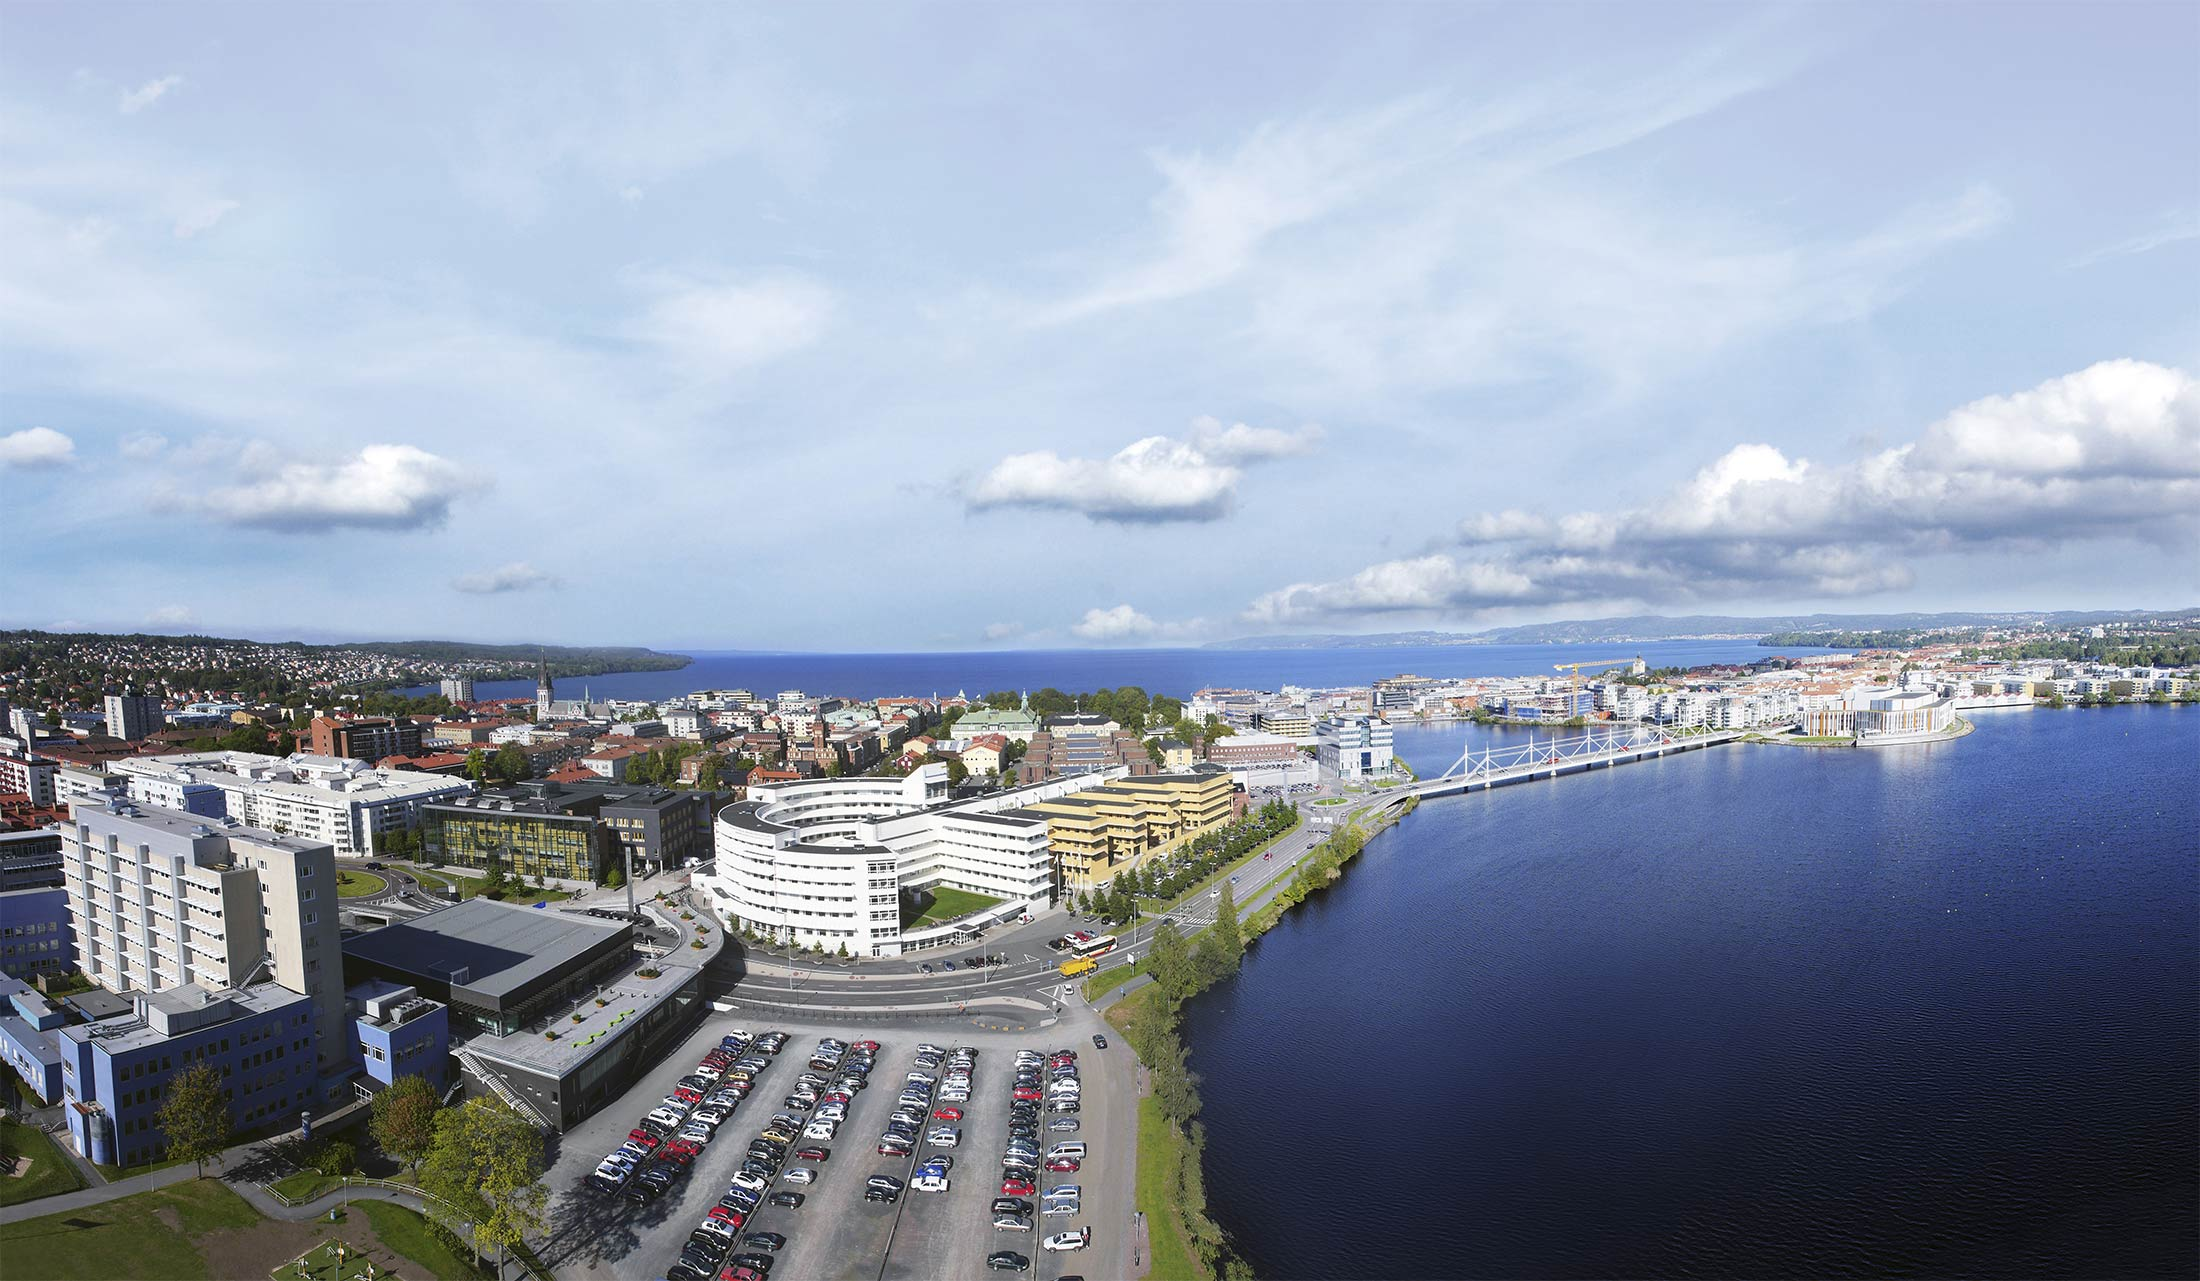 Jönköping University campus, in the middle of the beautiful city of Jönköping, situated by lake Vättern in the southern part of Sweden.